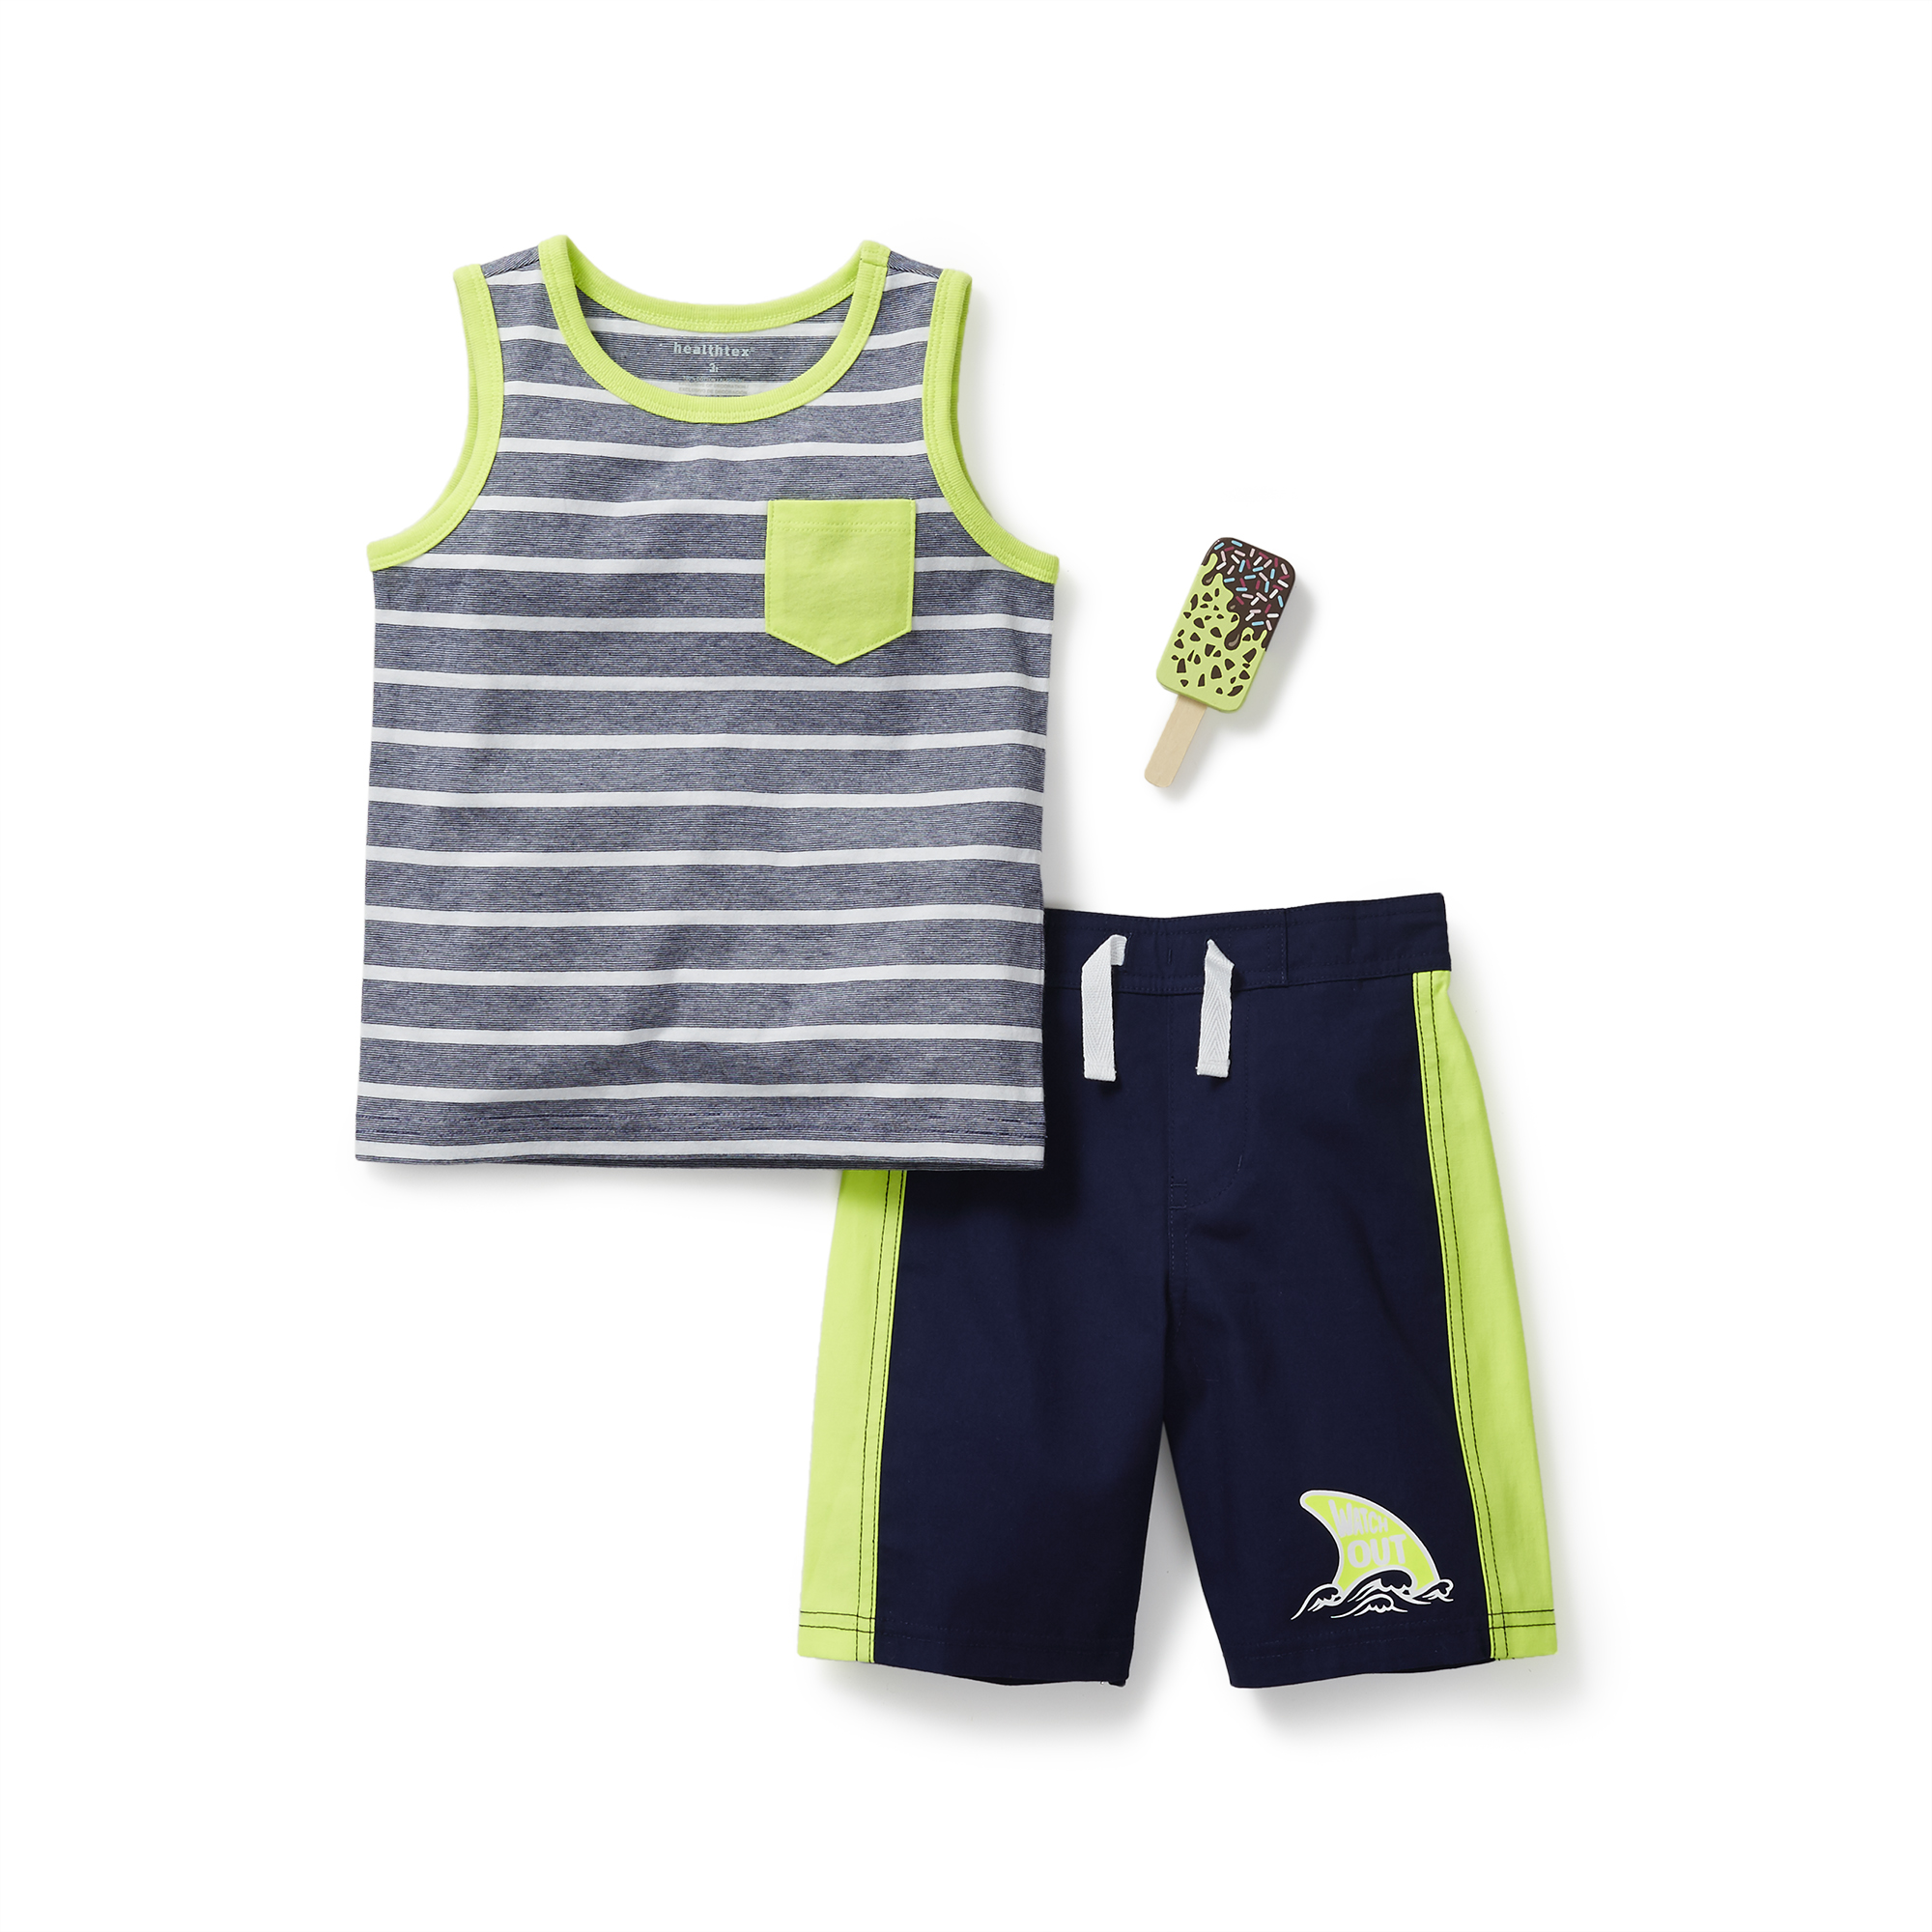 f6133236 Healthtex - Baby Toddler Boy Graphic Tank and Short Outfit Set ...